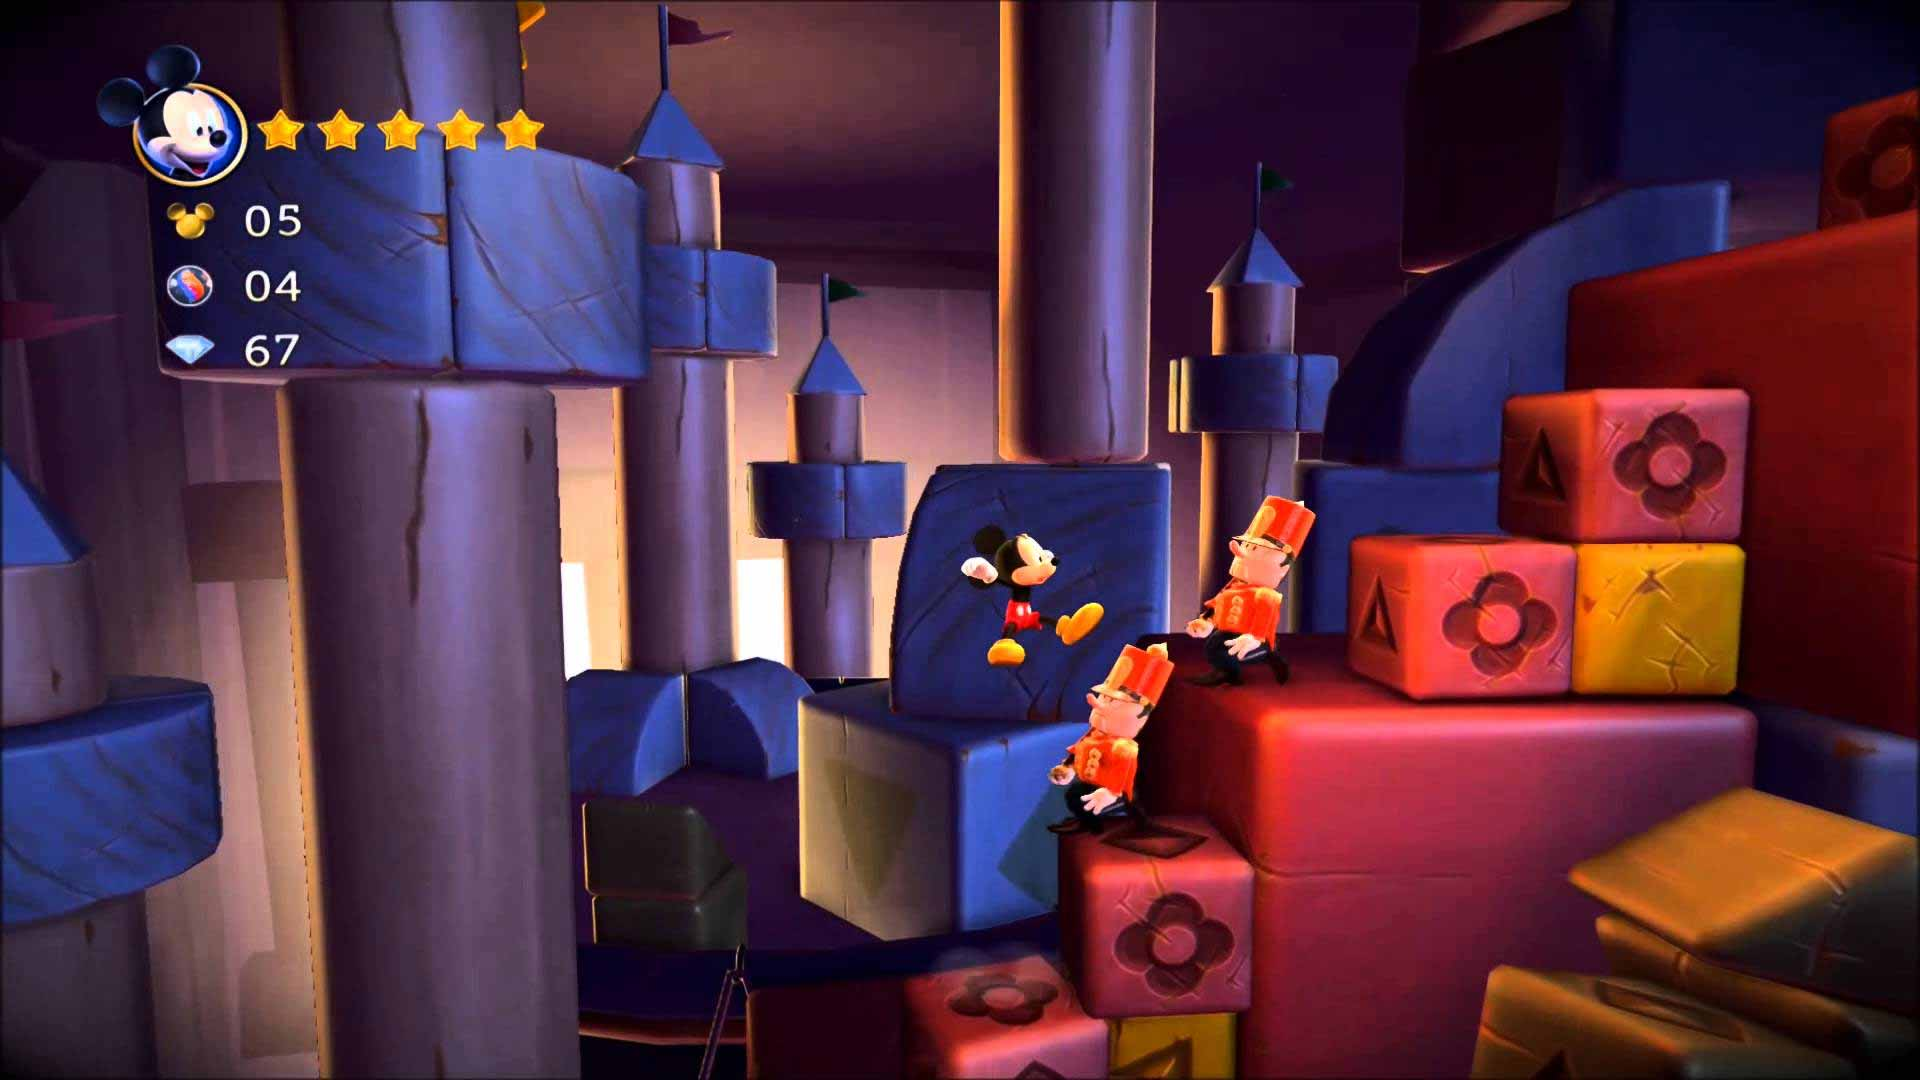 The 2013 Toyland level in Castle of Illusion - credit to https://www.youtube.com/watch?v=rYGCUjICrxQ